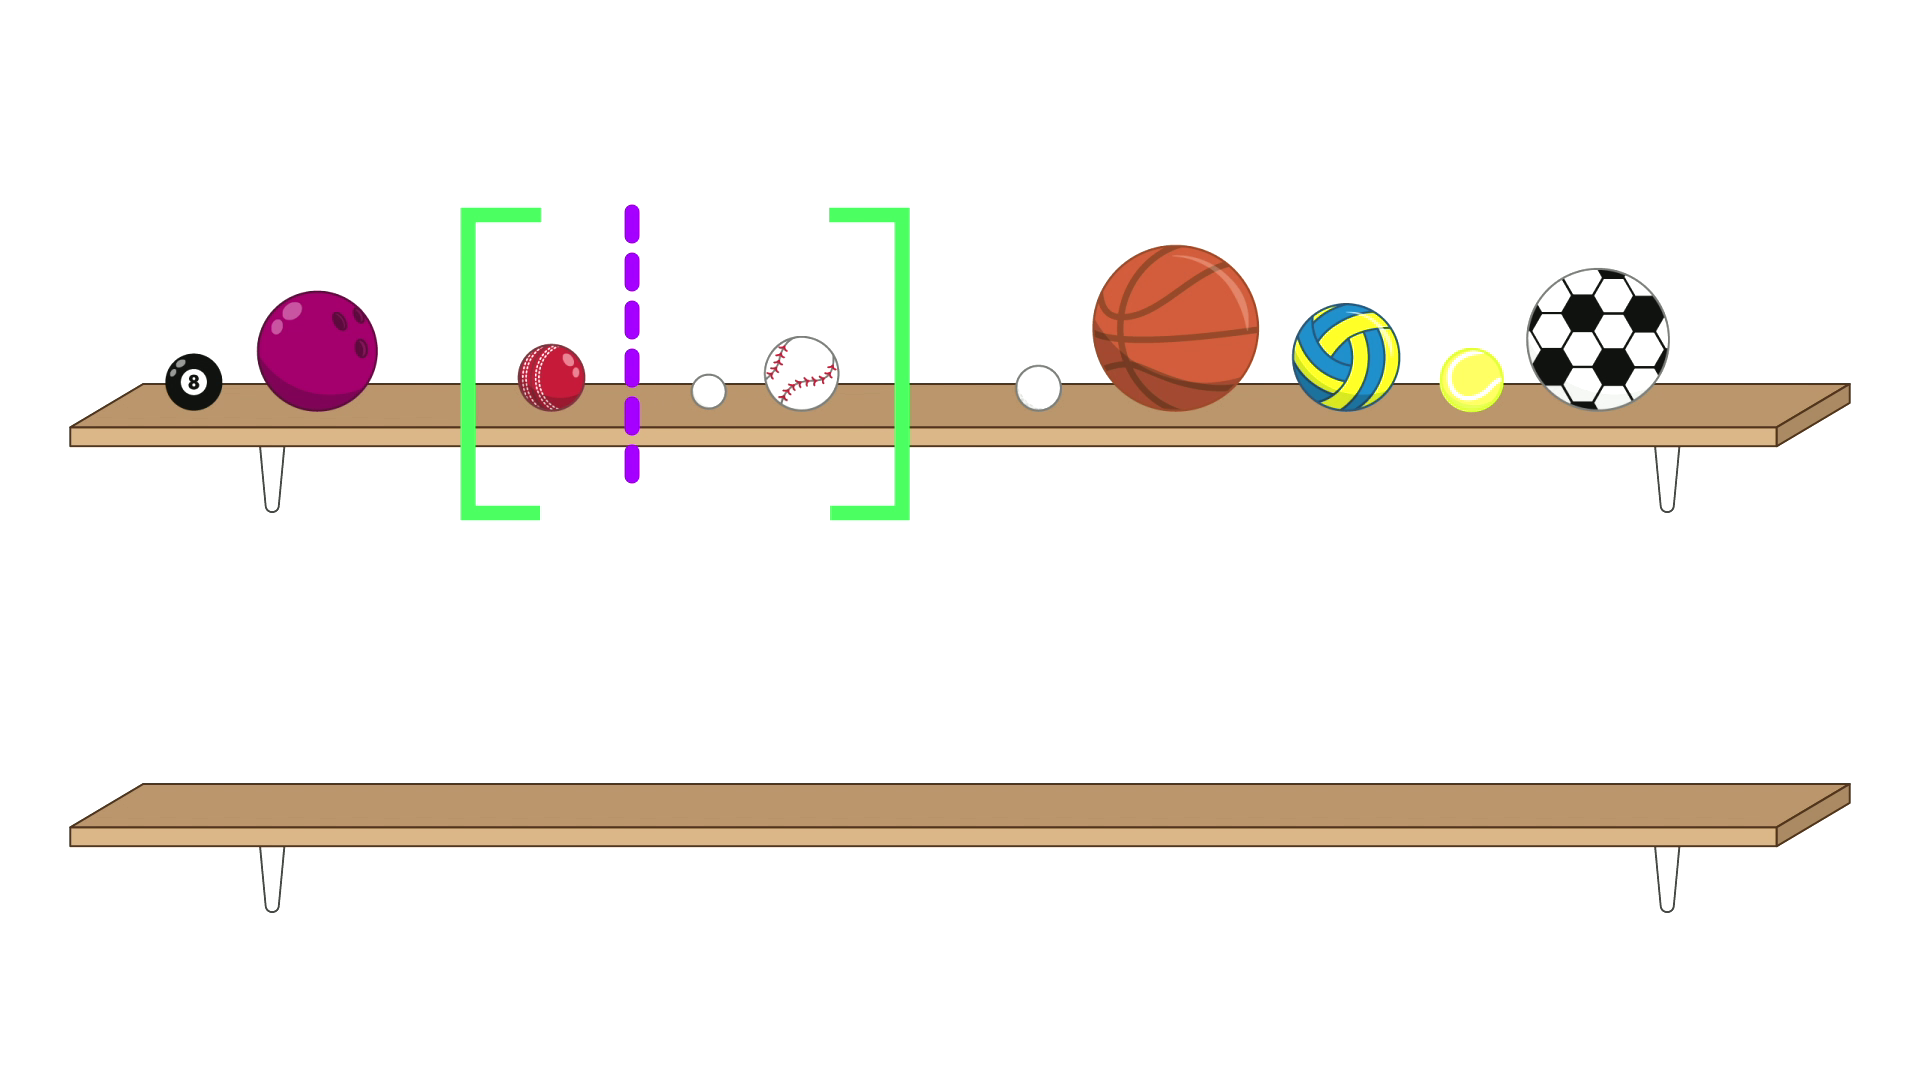 The balls are all back on the top shelf. The pool ball is now first, followed by the bowling ball. The next three balls, a cricket ball, a ping-pong ball and a baseball, are surrounded by a pair of green brackets. There is a purple dashed line in-between the cricket ball and the ping-pong ball splitting this group into 1 and 2. After the brackets are the remaining five balls: a golf ball, a basketball, a netball, a tennis ball and a soccer ball. The bottom shelf is empty.